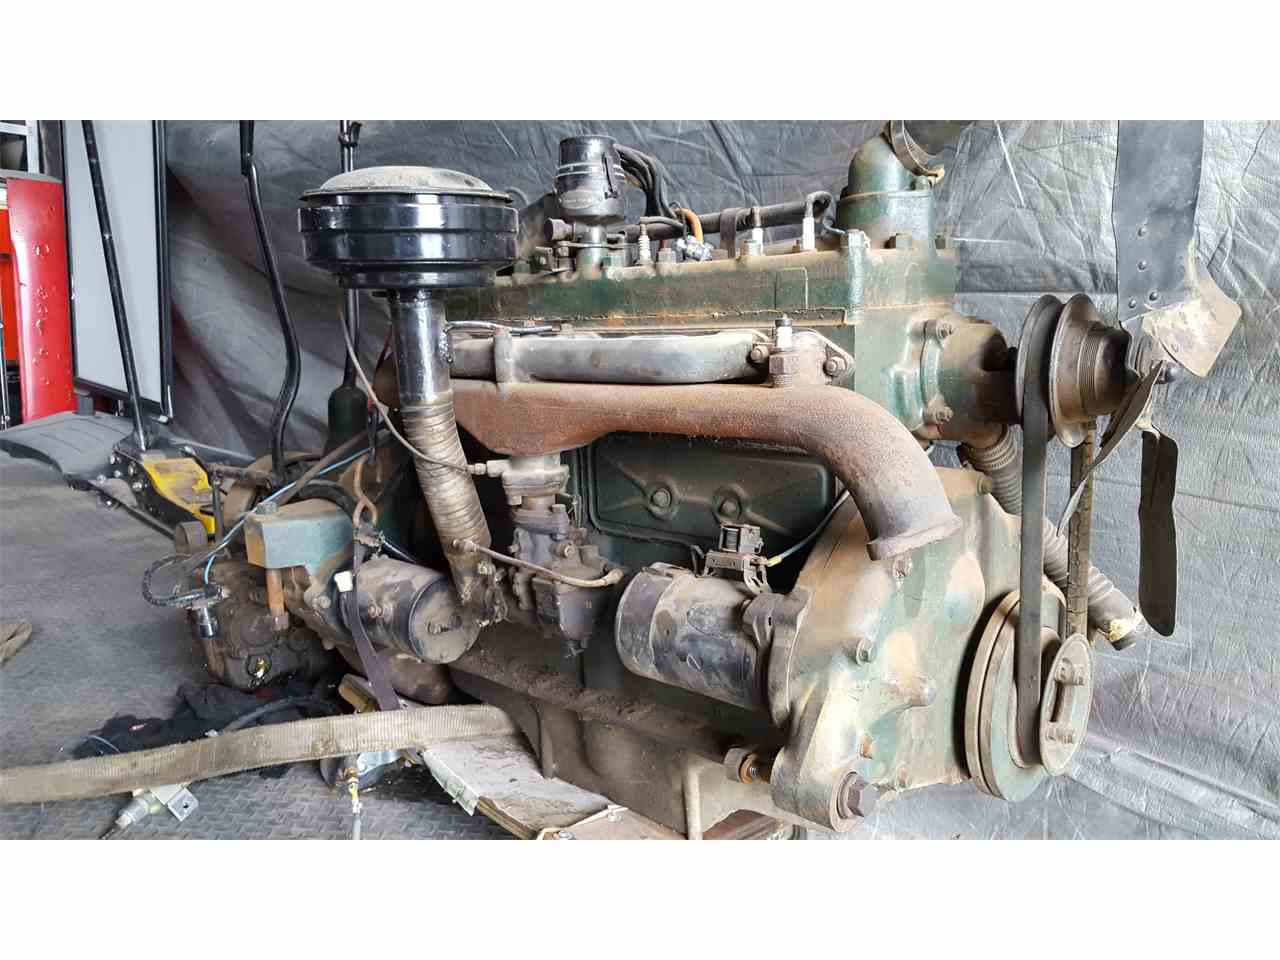 1928 REO Speedwagon Engine for Sale - CC-713887